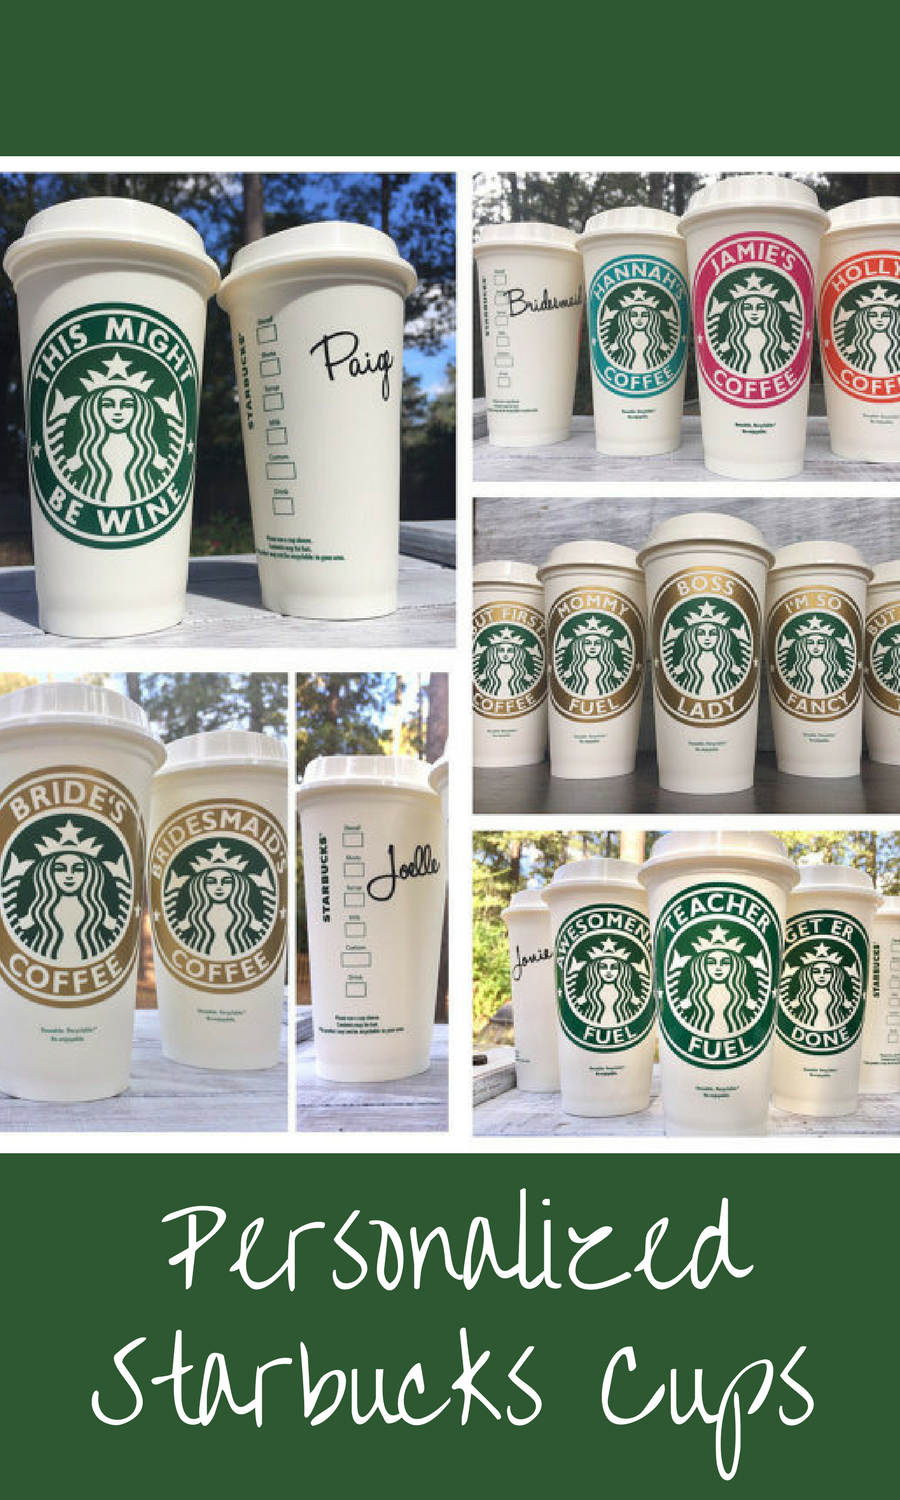 Starbucks Cup, Starbucks Personalized Coffee Cup, Reusable